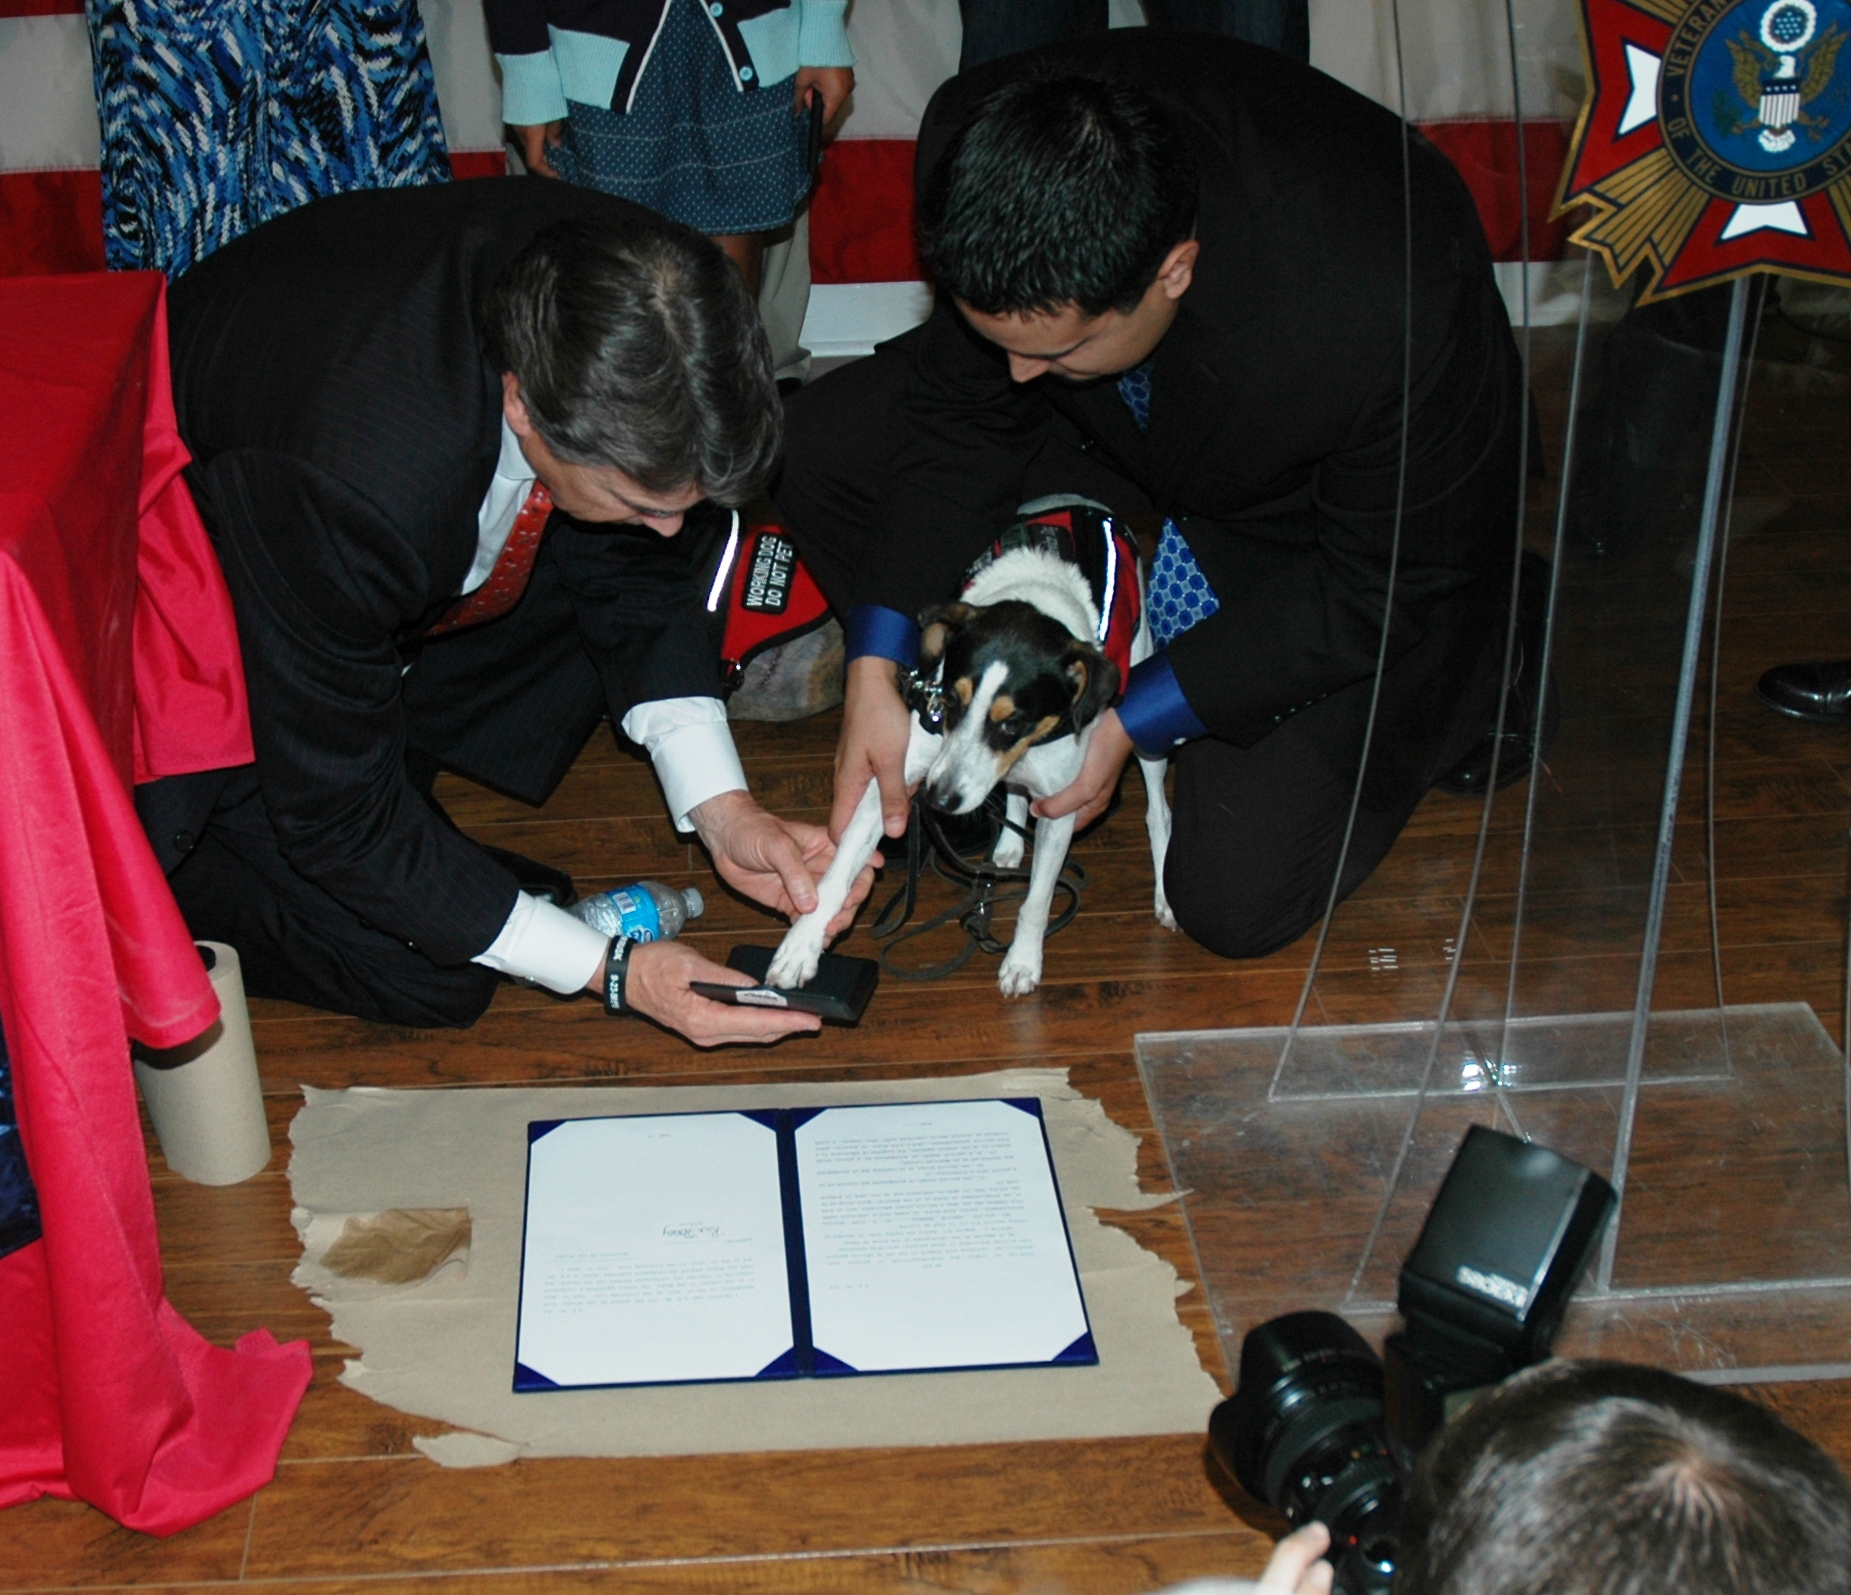 former Texas governor Rick Perry helping Bootz the dog put paw print on new law